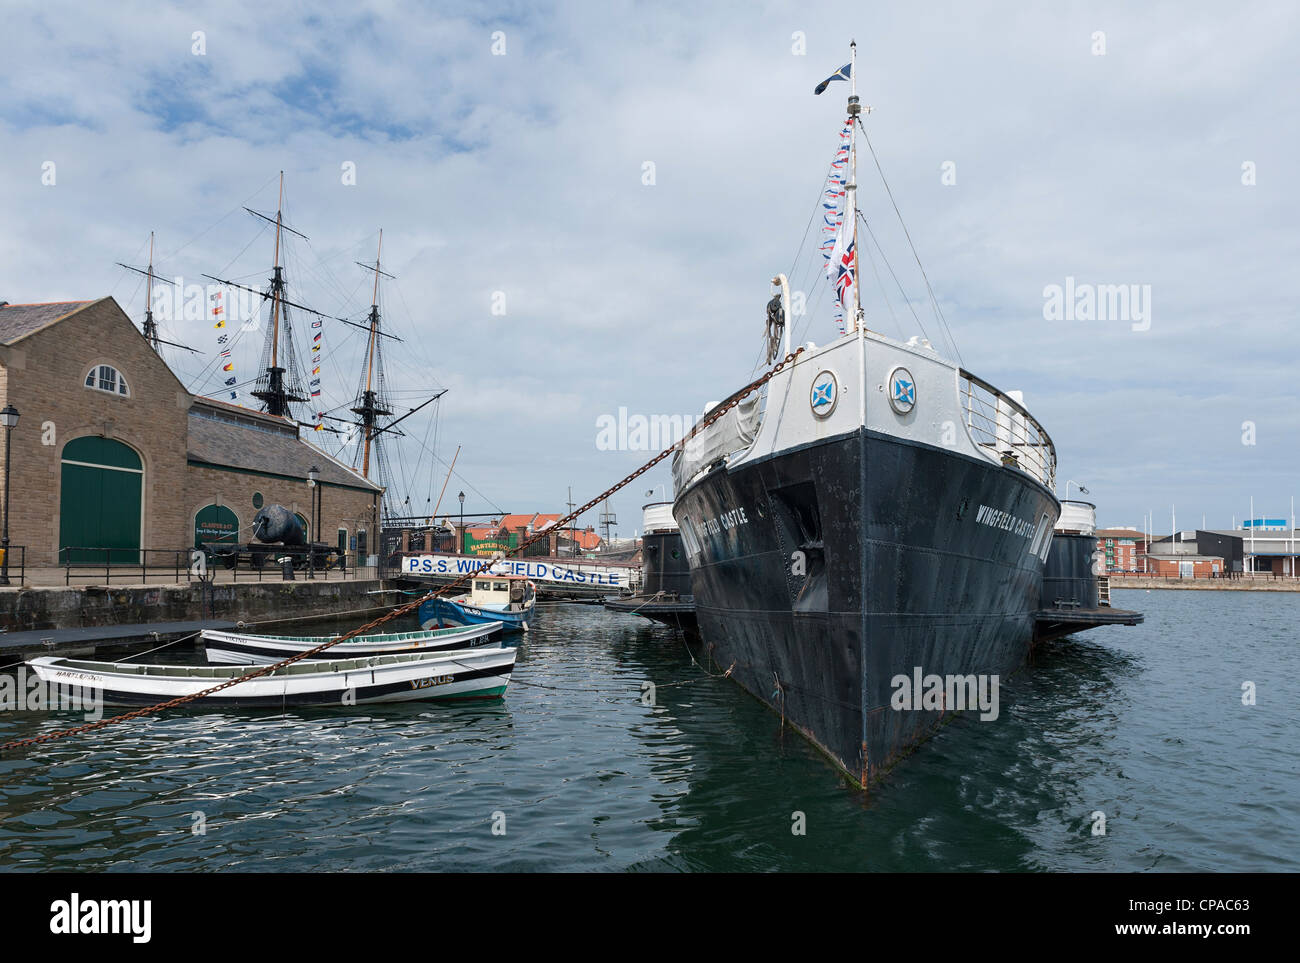 Hartlepool Historic Quay now known as Hartlepool's Maritime Experience - Stock Image